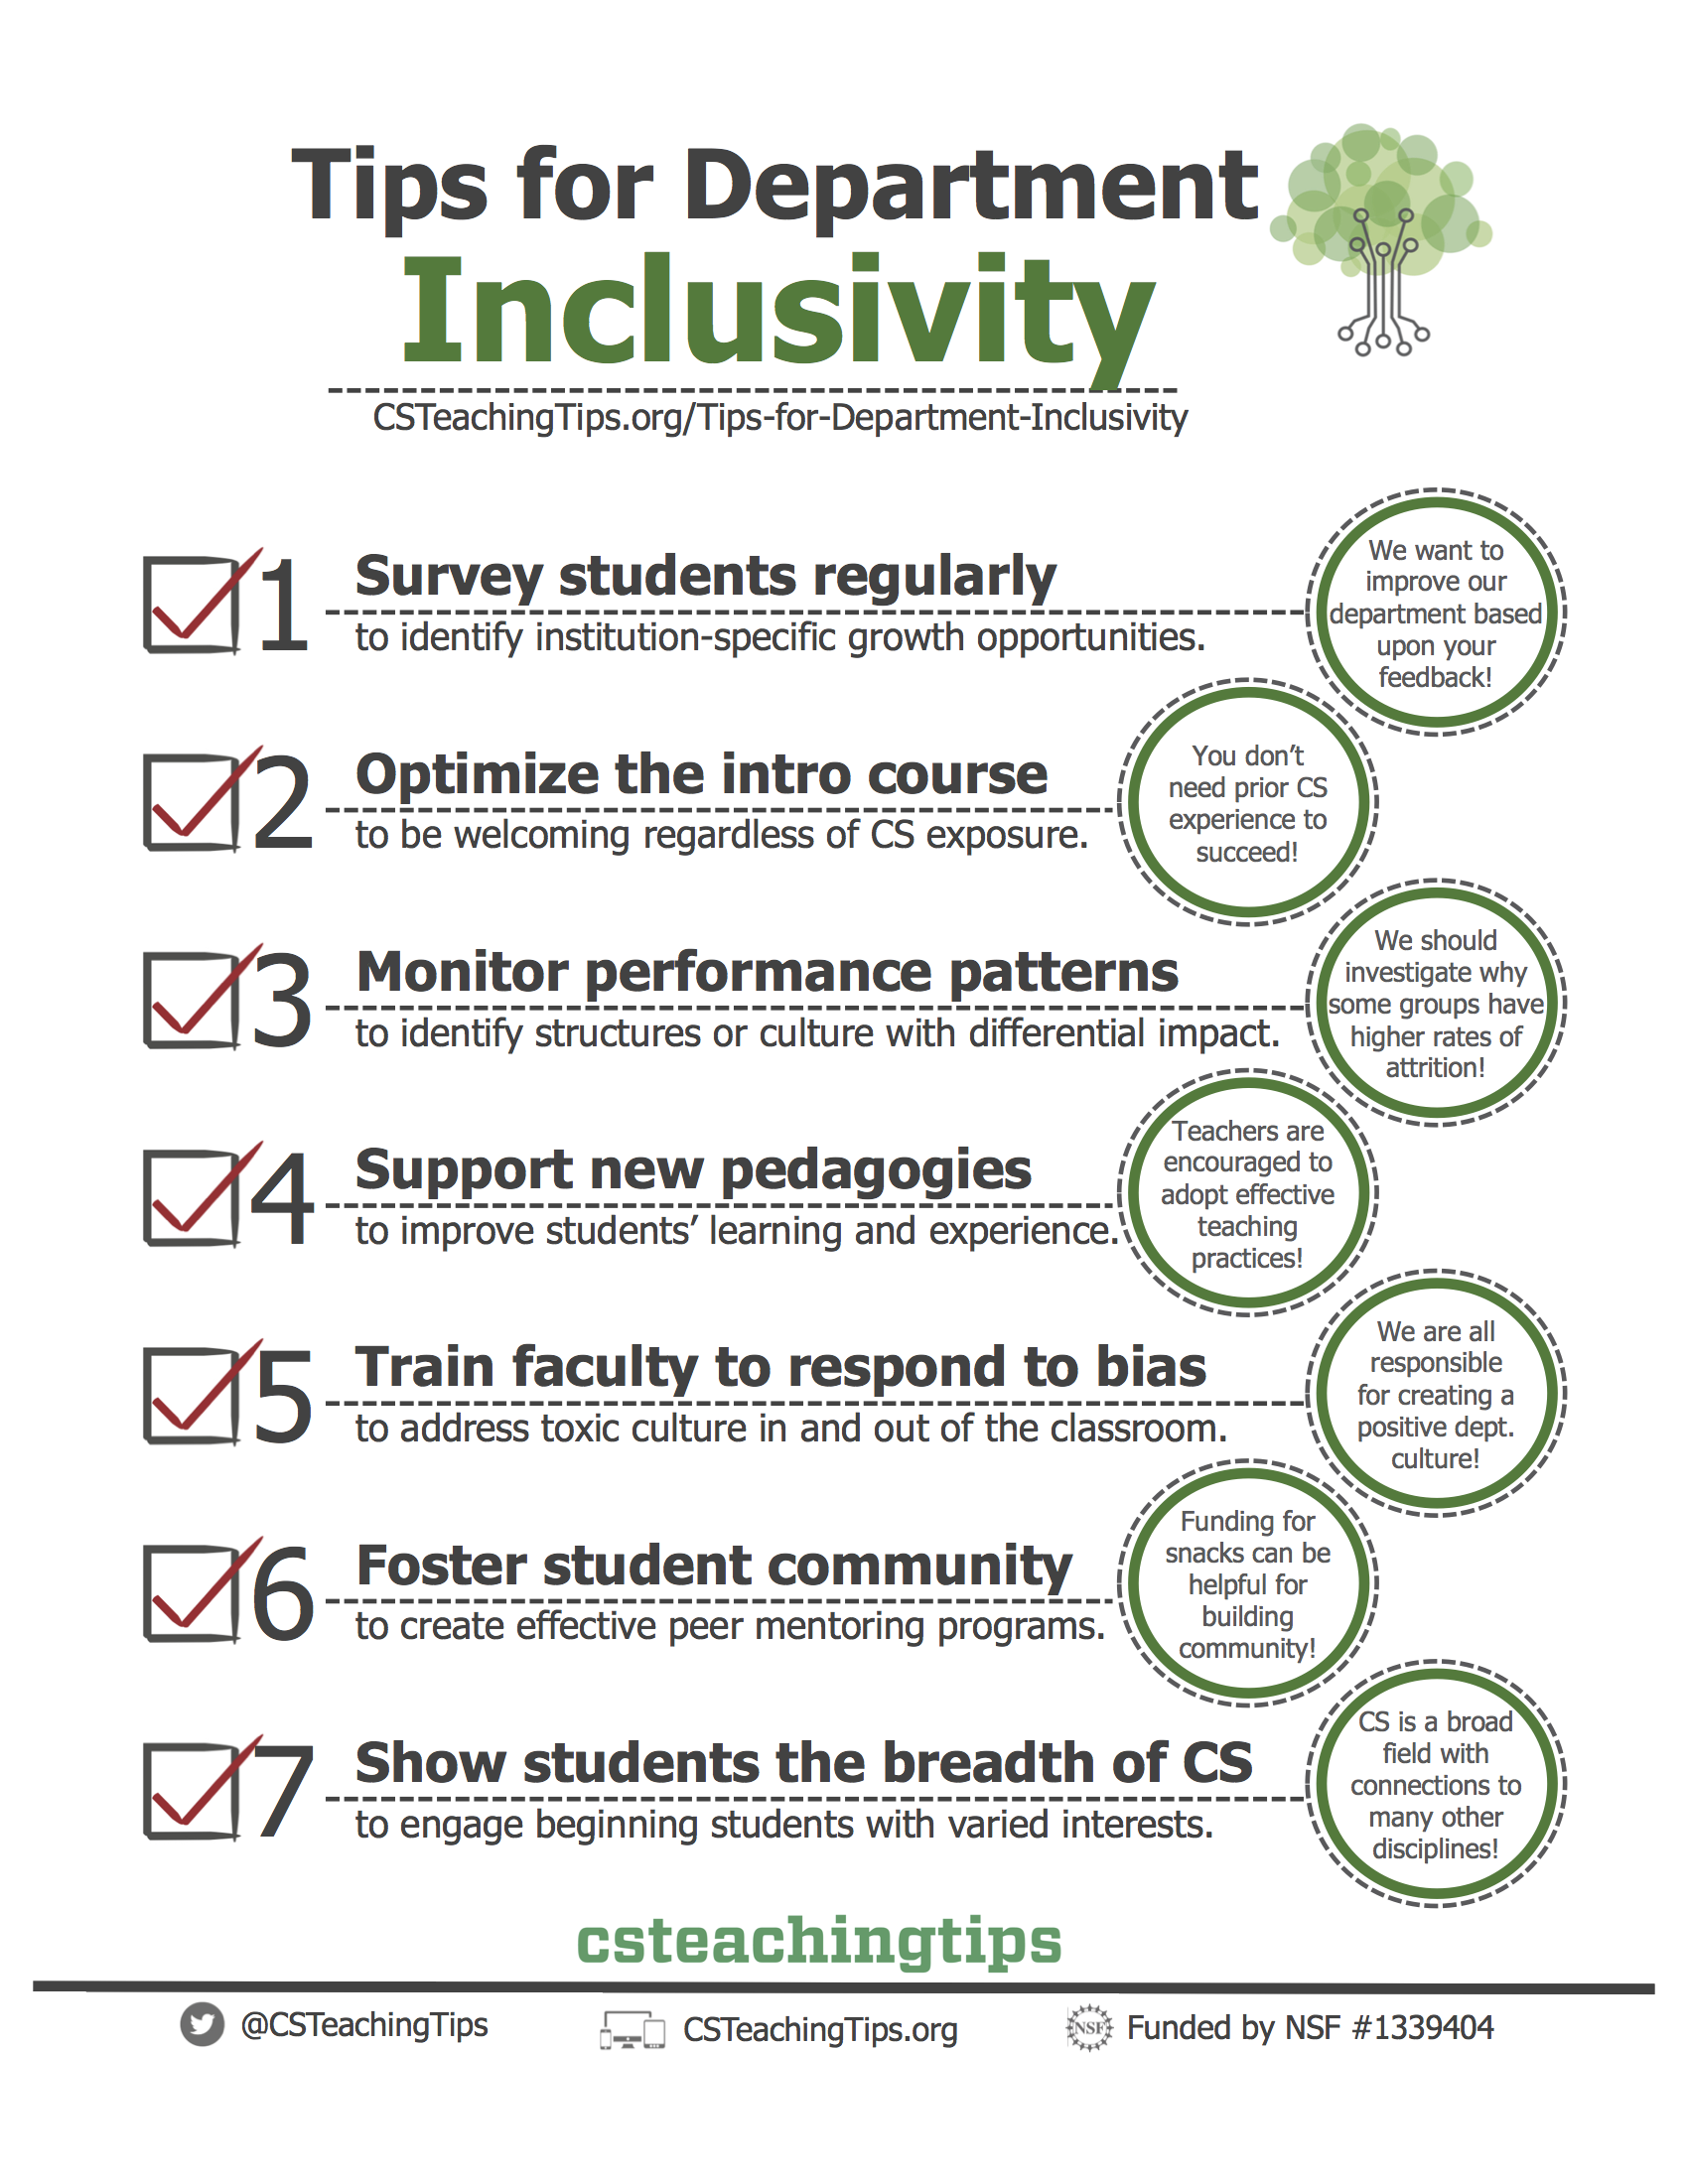 Tips for Department Inclusivity